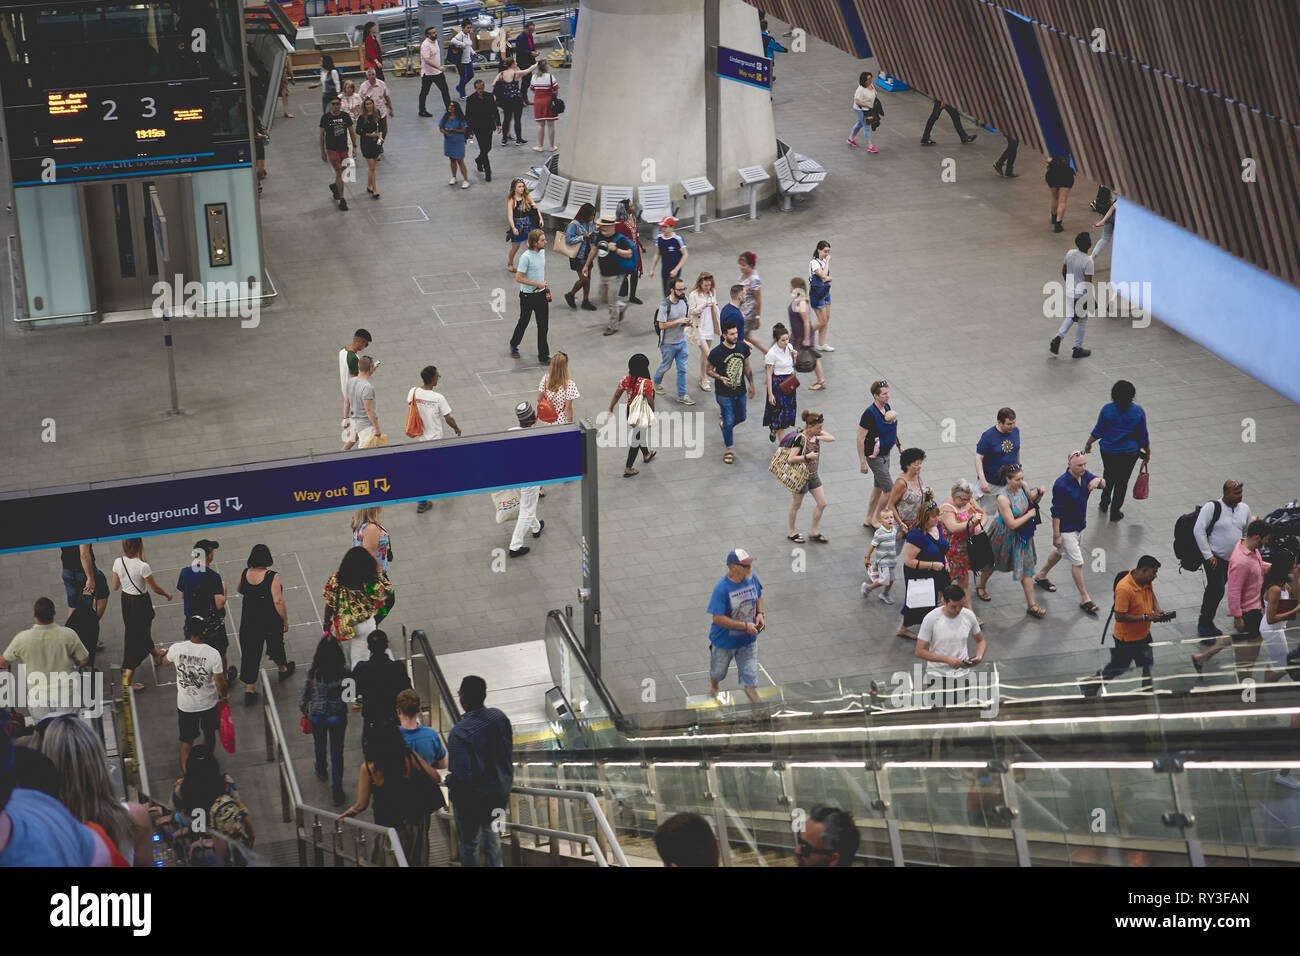 London, UK - August, 2018. Tourist and commuters in the new London Bridge Station, the fourth-busiest station in London. - Stock Image